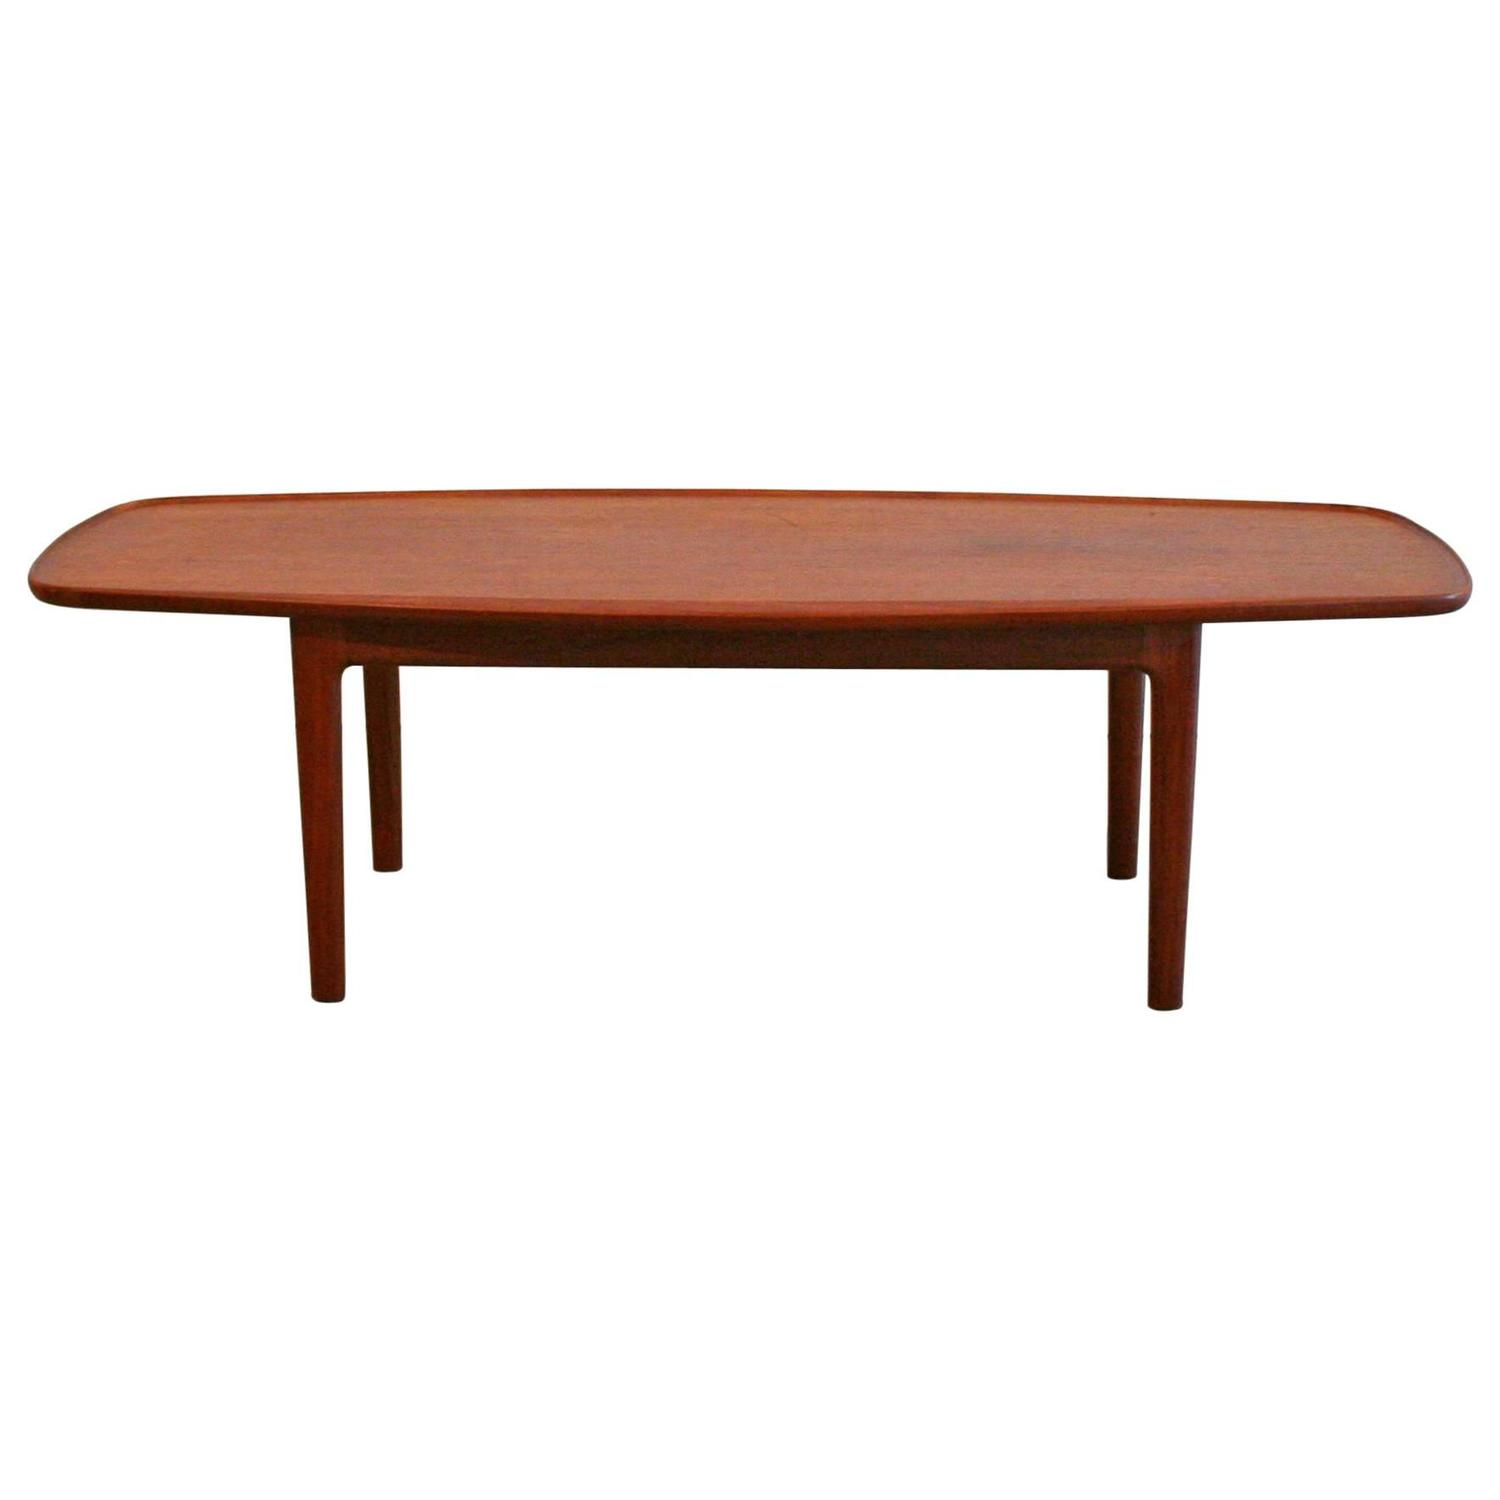 Old Teak Coffee Table: Vintage Danish Teak Coffee Table At 1stdibs